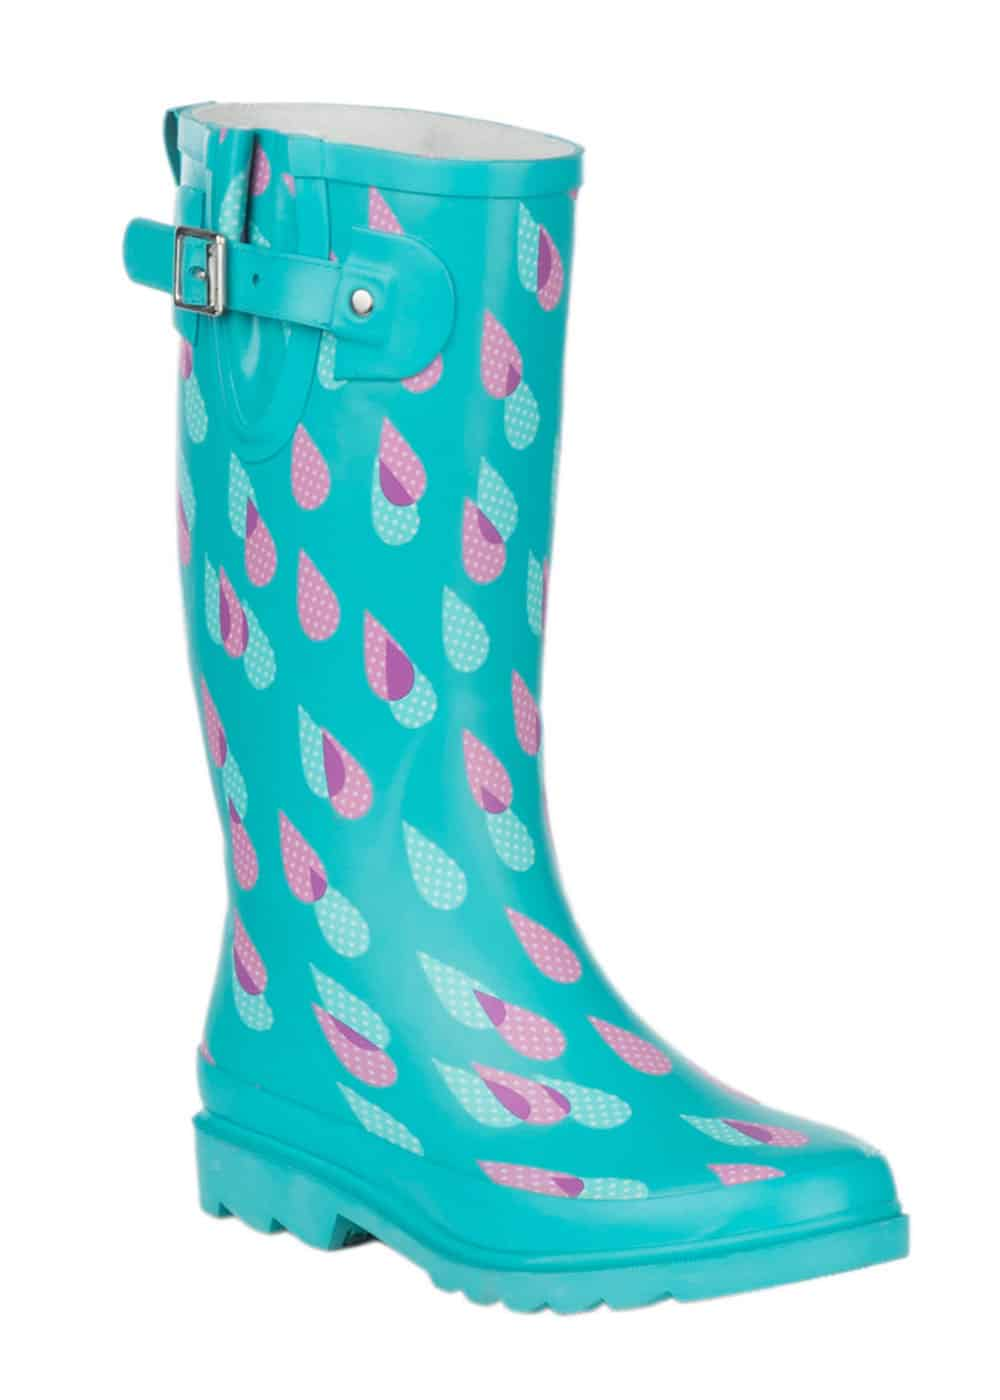 turquoise rain boots with raindrops cavenders cowgirl magazine